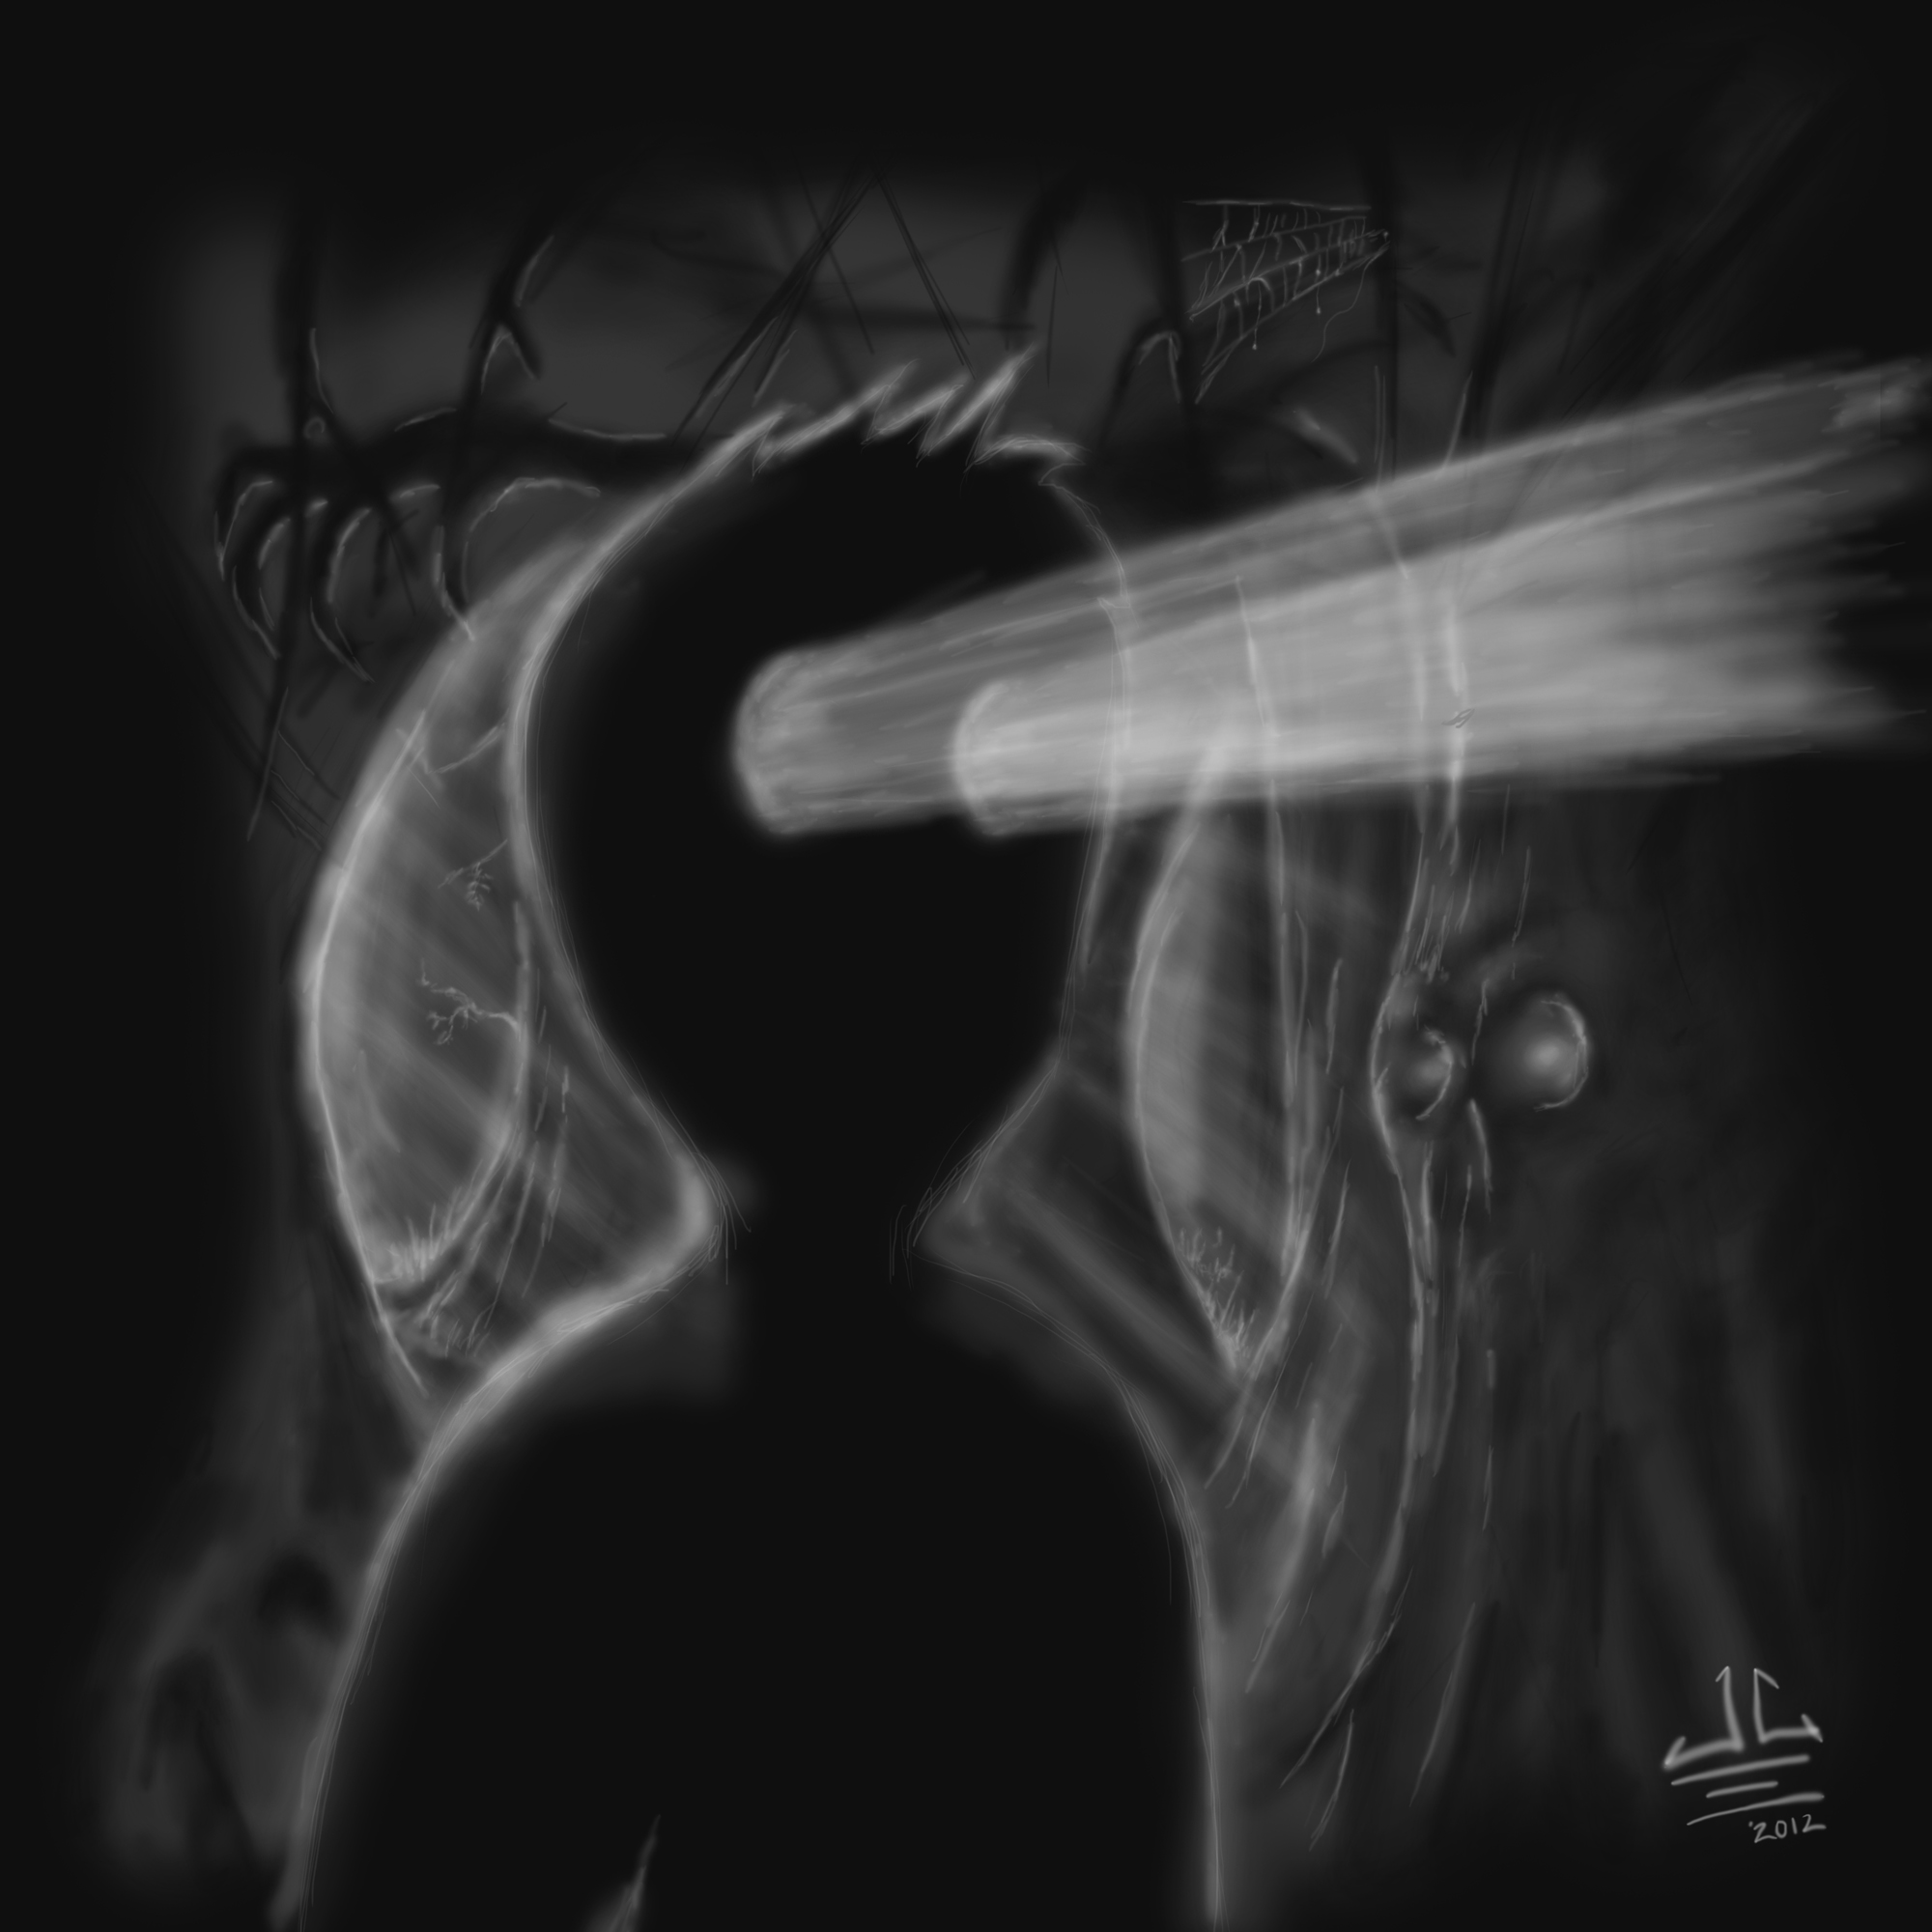 In the Dark - 'Searching'